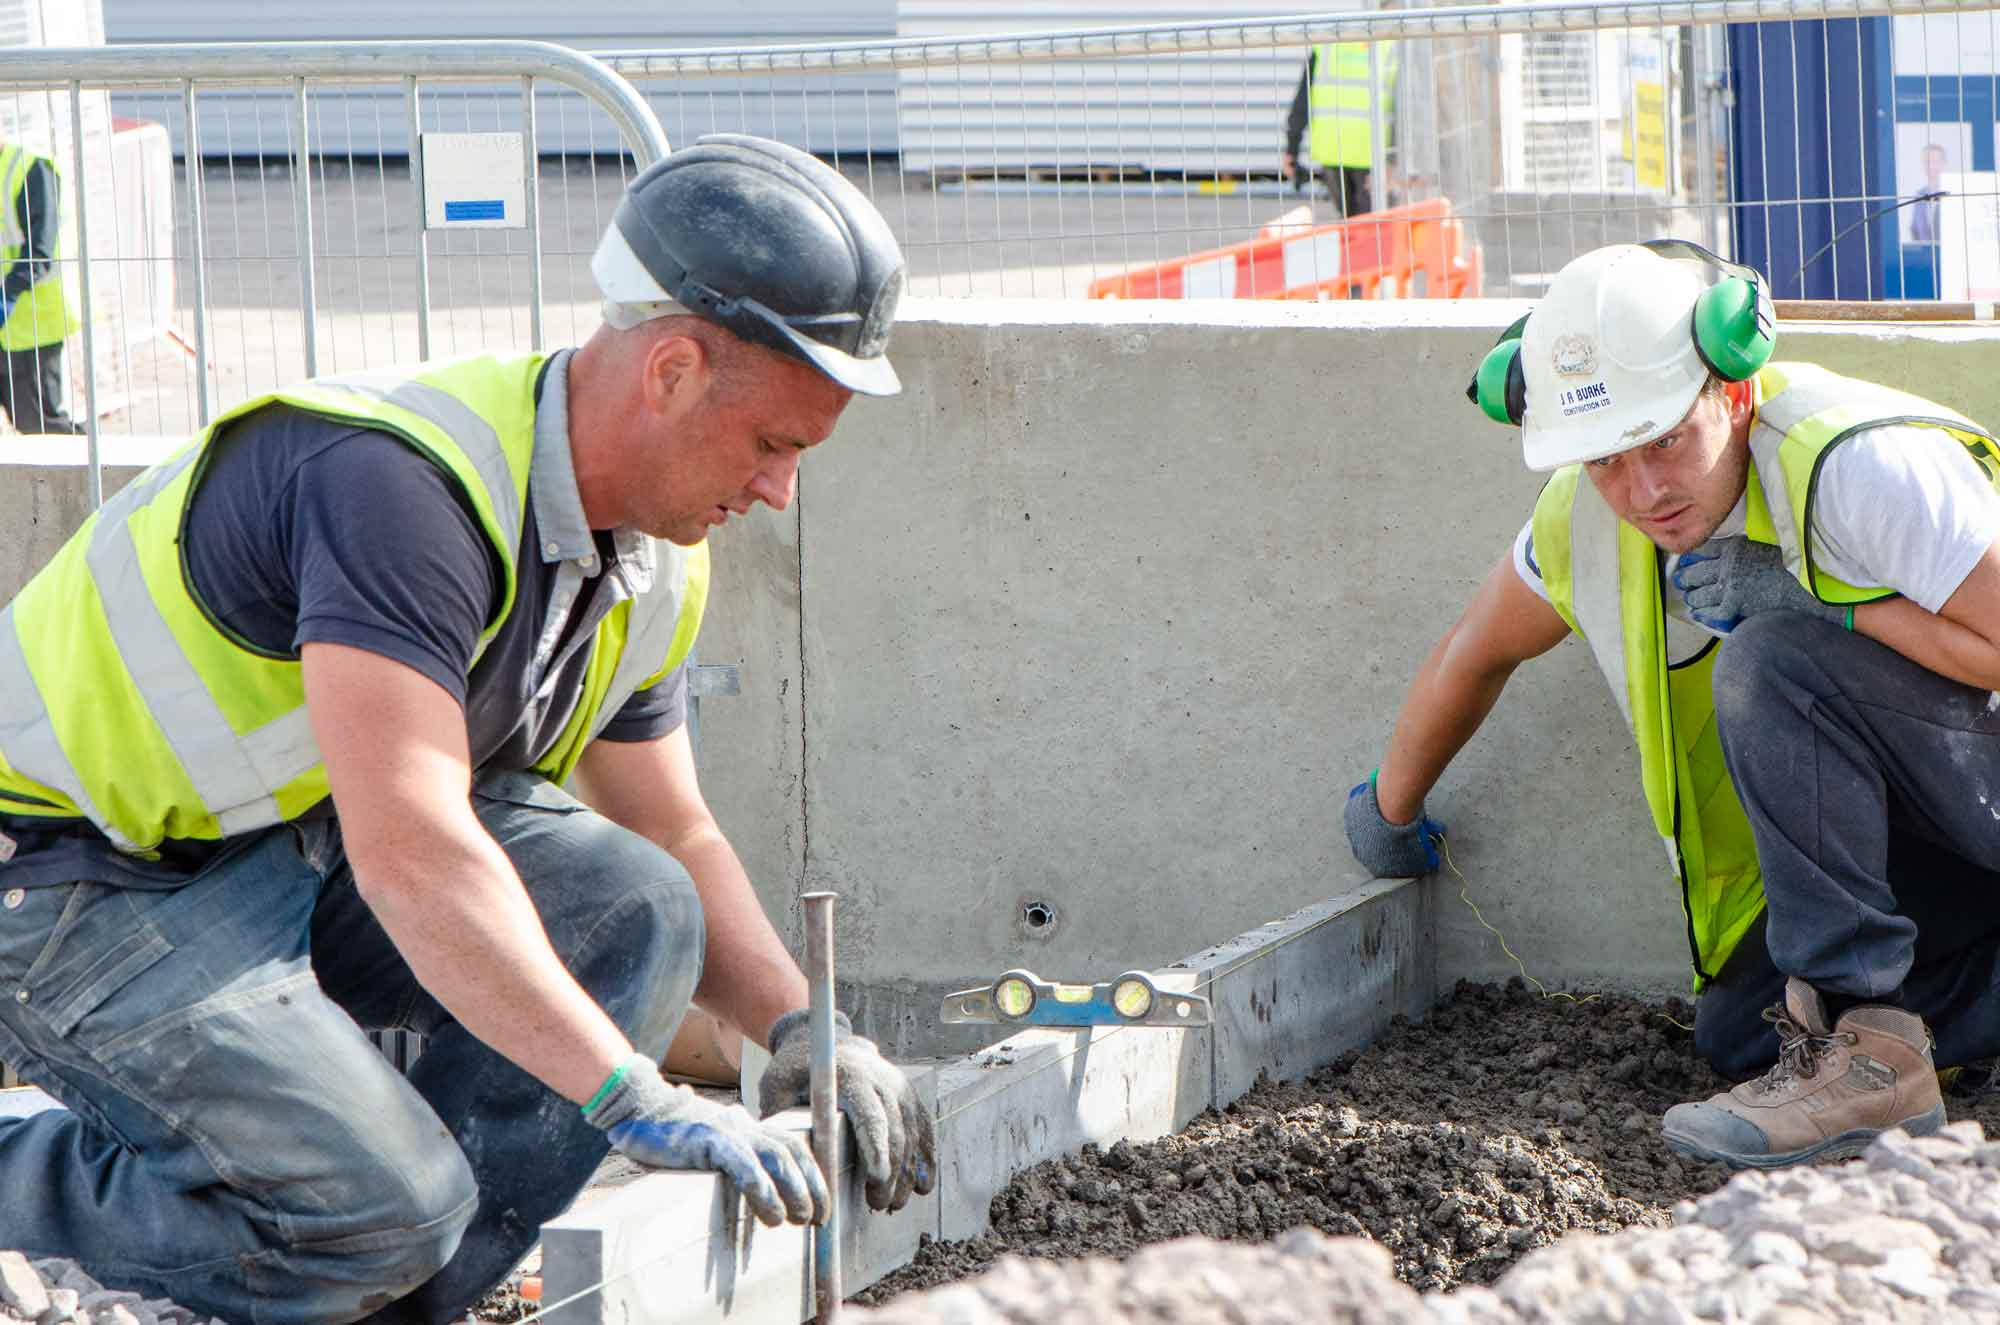 Setting curbing Wolverhampton - J A Burke Construction Limited -Midlands based ground works, civils and RC frame company.